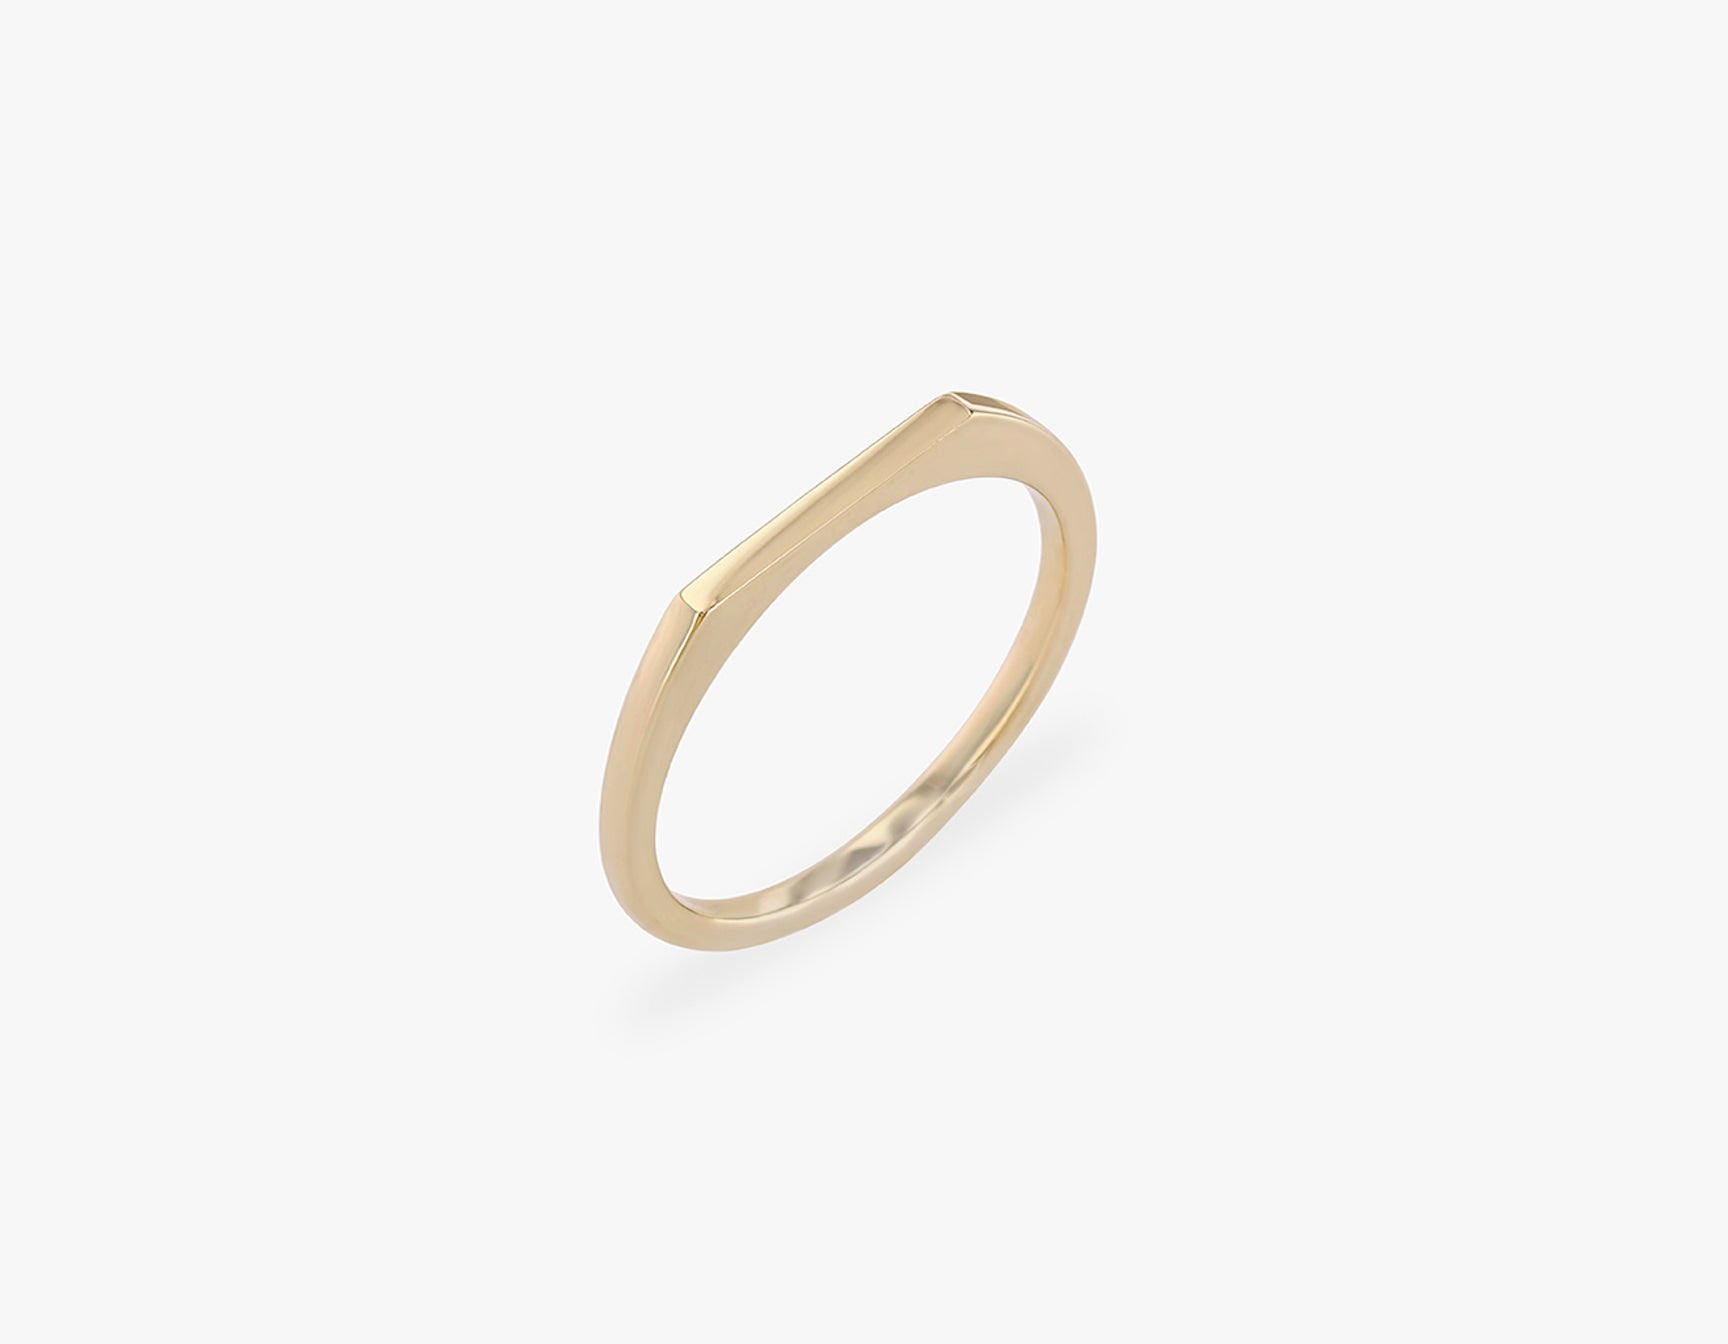 Vrai solid gold Line Ring, 14K Yellow Gold